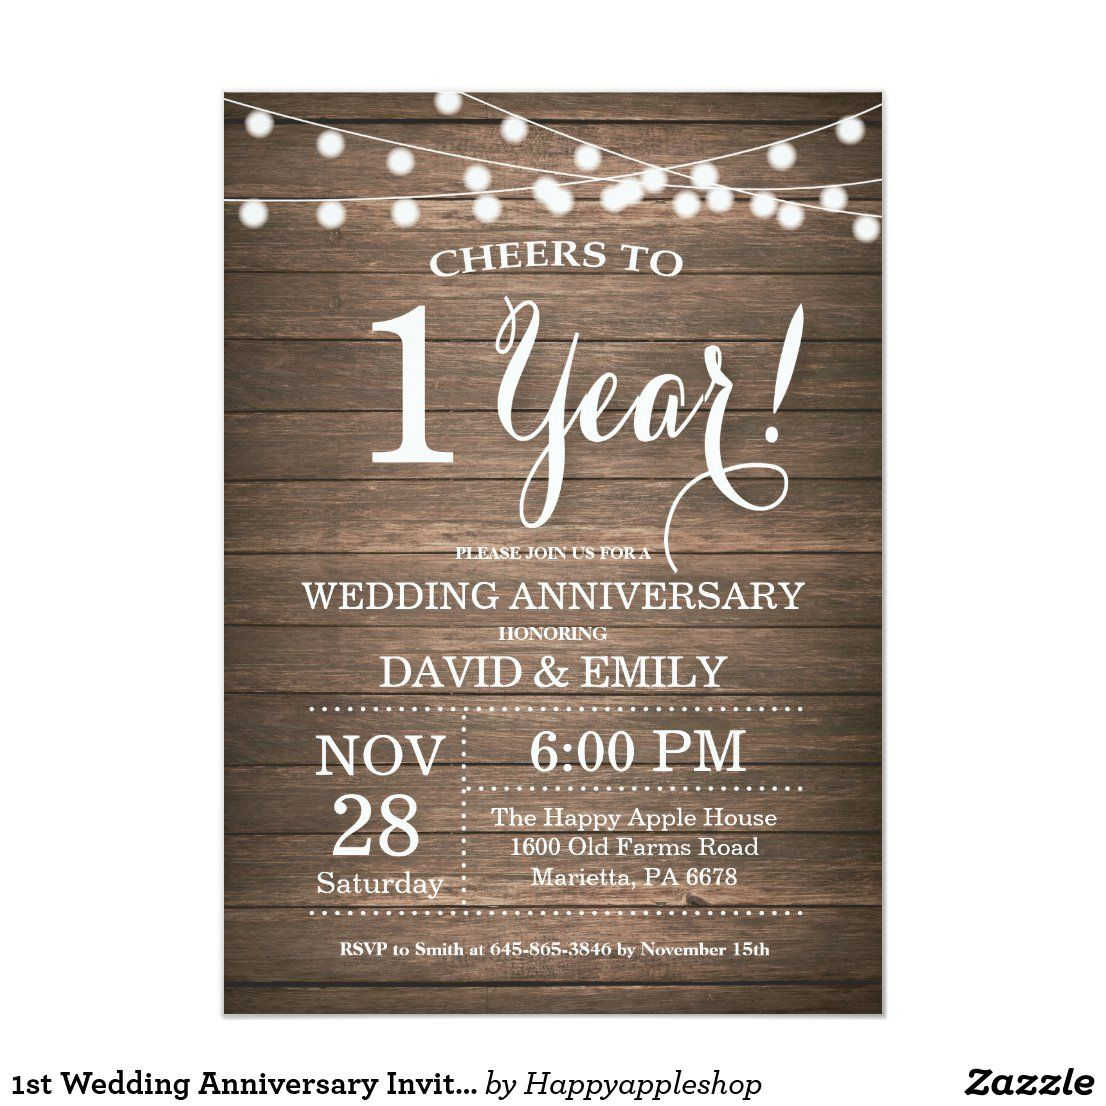 Anniversary Ideas For Milestones Cards And Invites What To Give For Each Year Aesthetic Journeys Anniversary Party Invitations Wedding Anniversary Party Invitations Anniversary Party Decorations